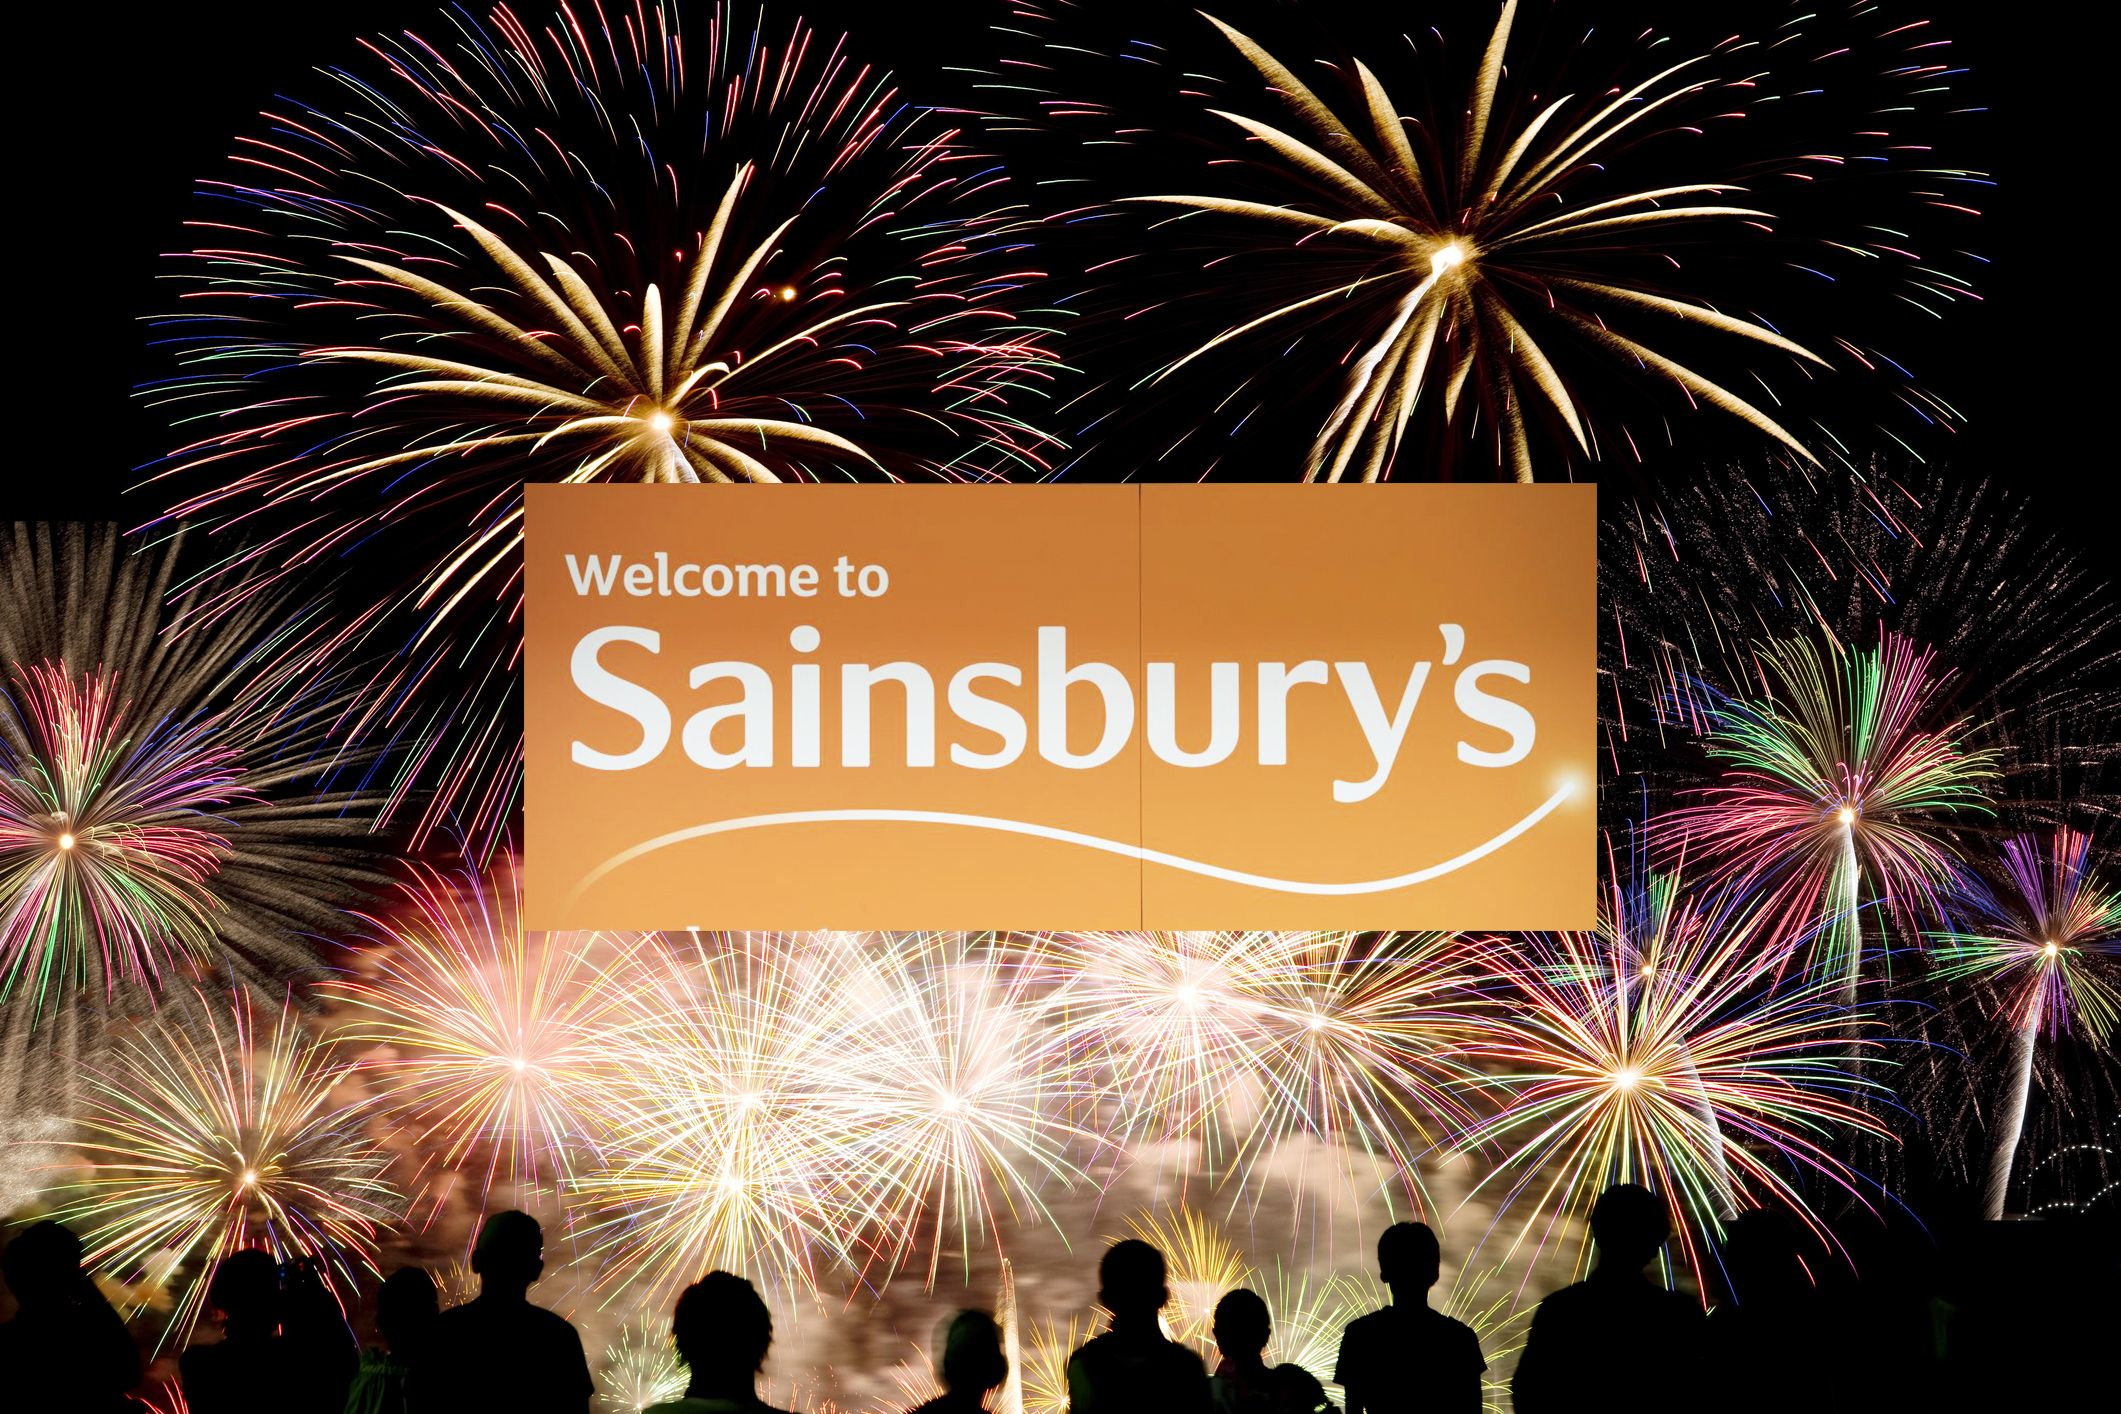 Sainsbury's to stop selling fireworks following concern for pets